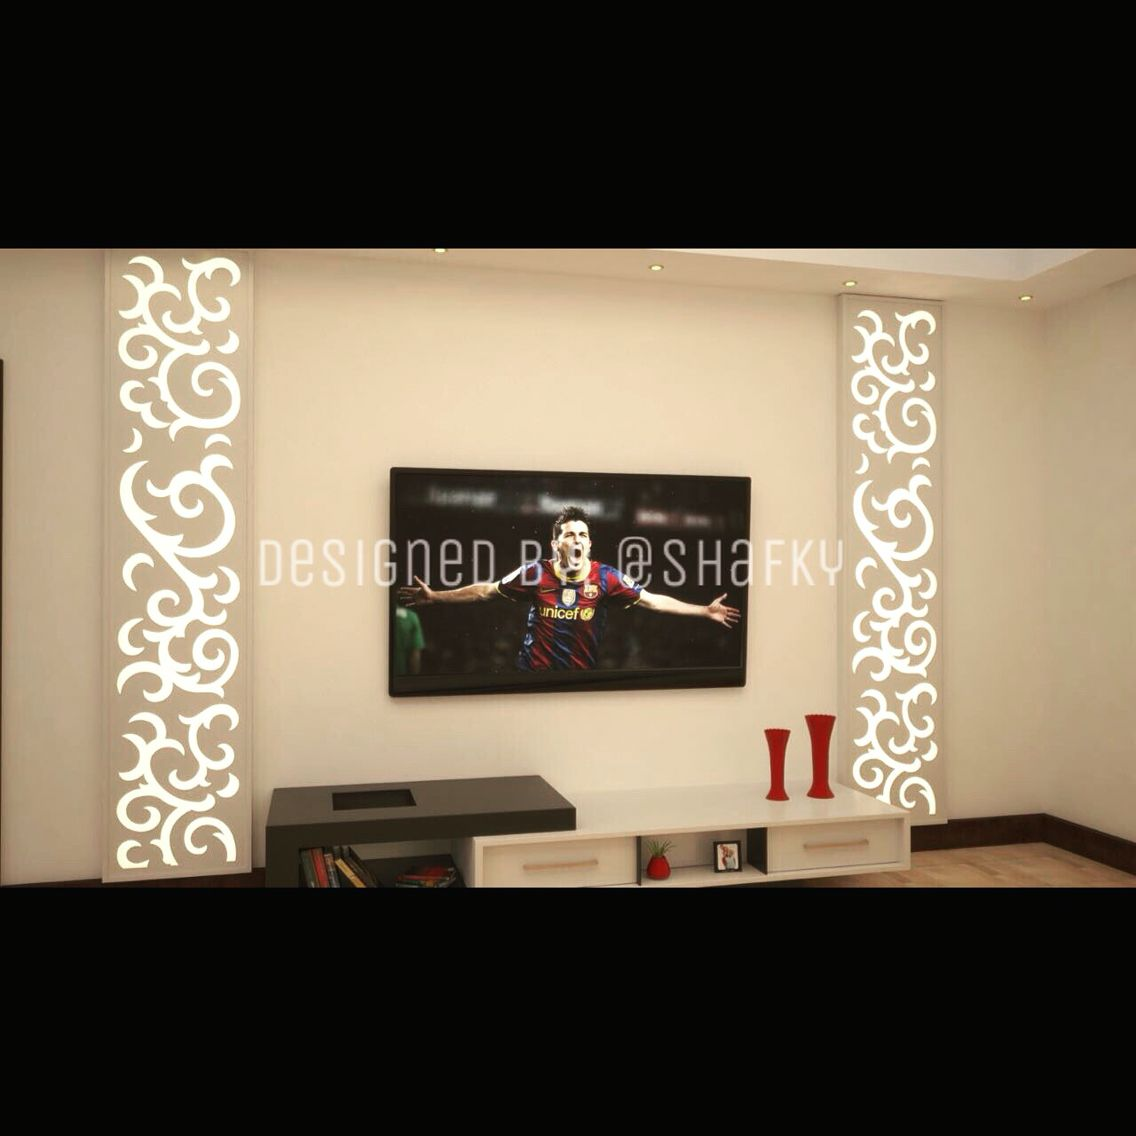 Tv Wall Design With Wooden Boxed Shape Acrylic U0026 Wooden CNC Design On The  Top With